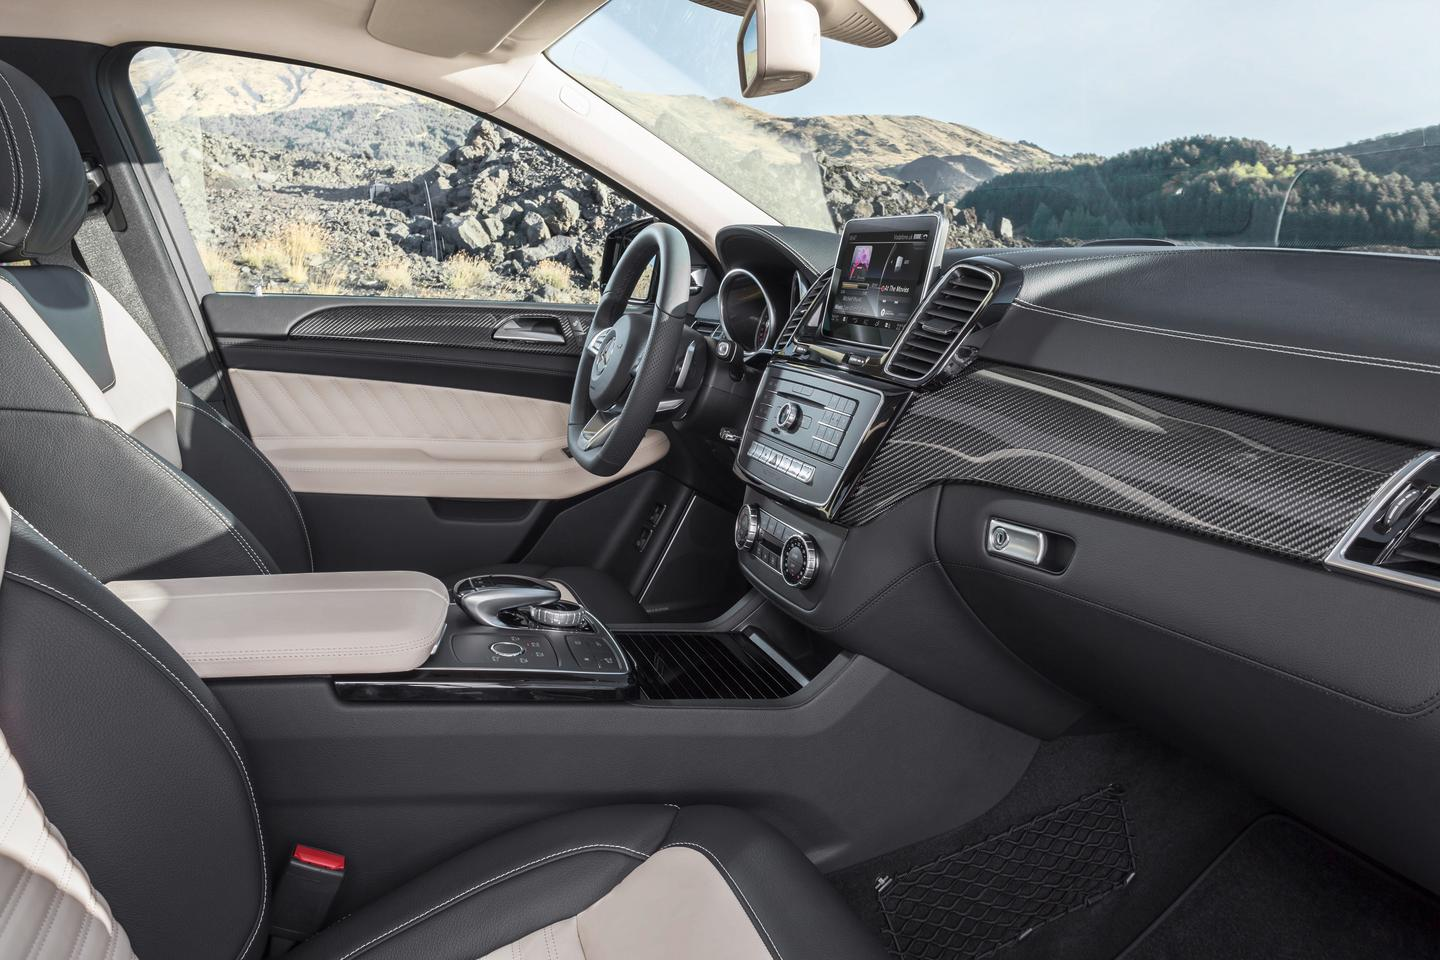 Inside, the GLE Coupe features the same COMAND screen that appears in all other recent Mercedes cars